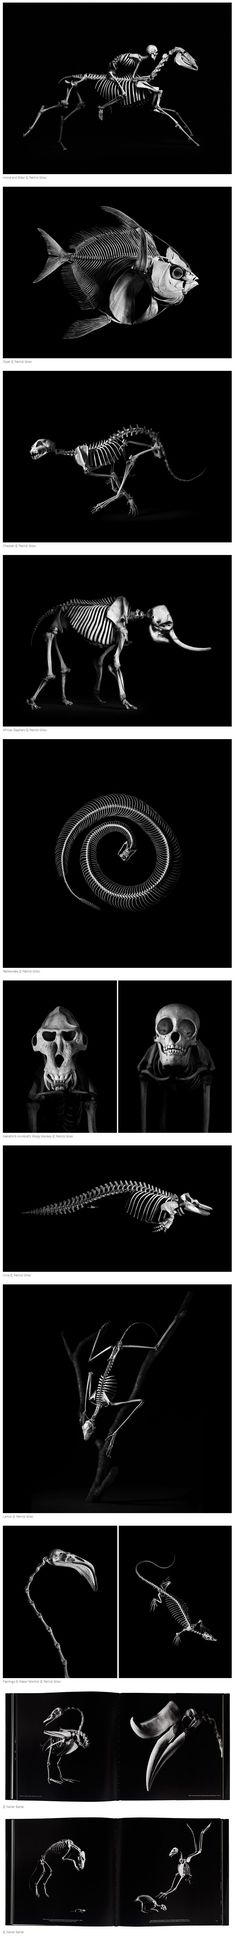 Created in collaboration with the National Museum of Natural History in Paris, Evolution is an extraordinary collection of images by photographer Patrick Gries that tells the visual story of evolution through 300 black and white photos of vertebrate skeletons.